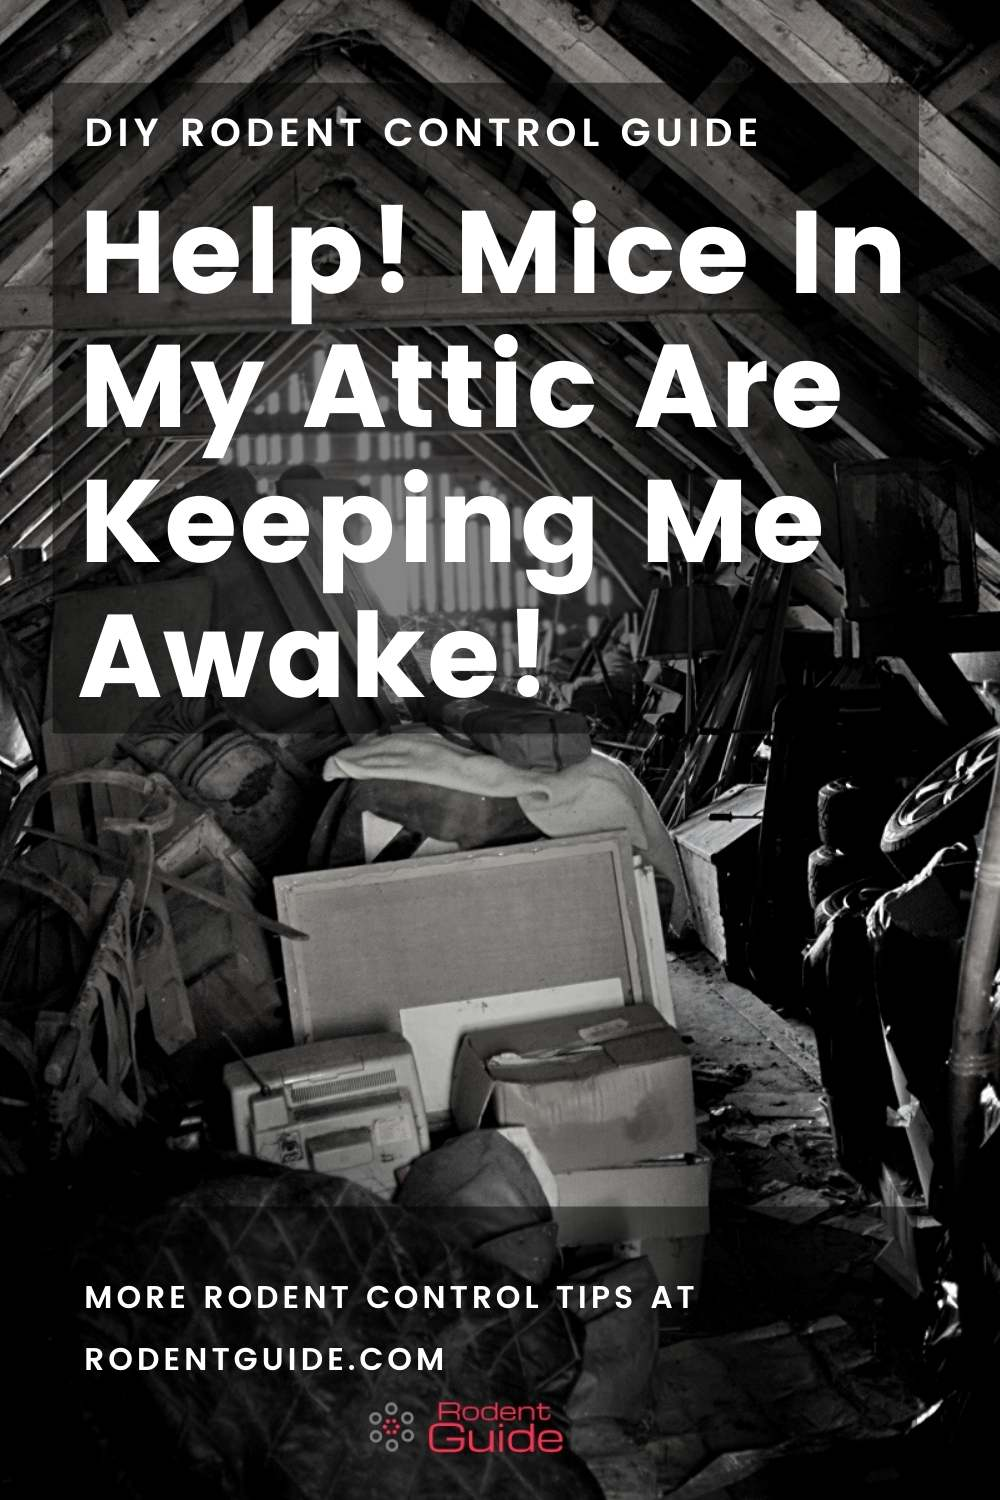 Help! Mice In My Attic Are Keeping Me Awake!That Work!